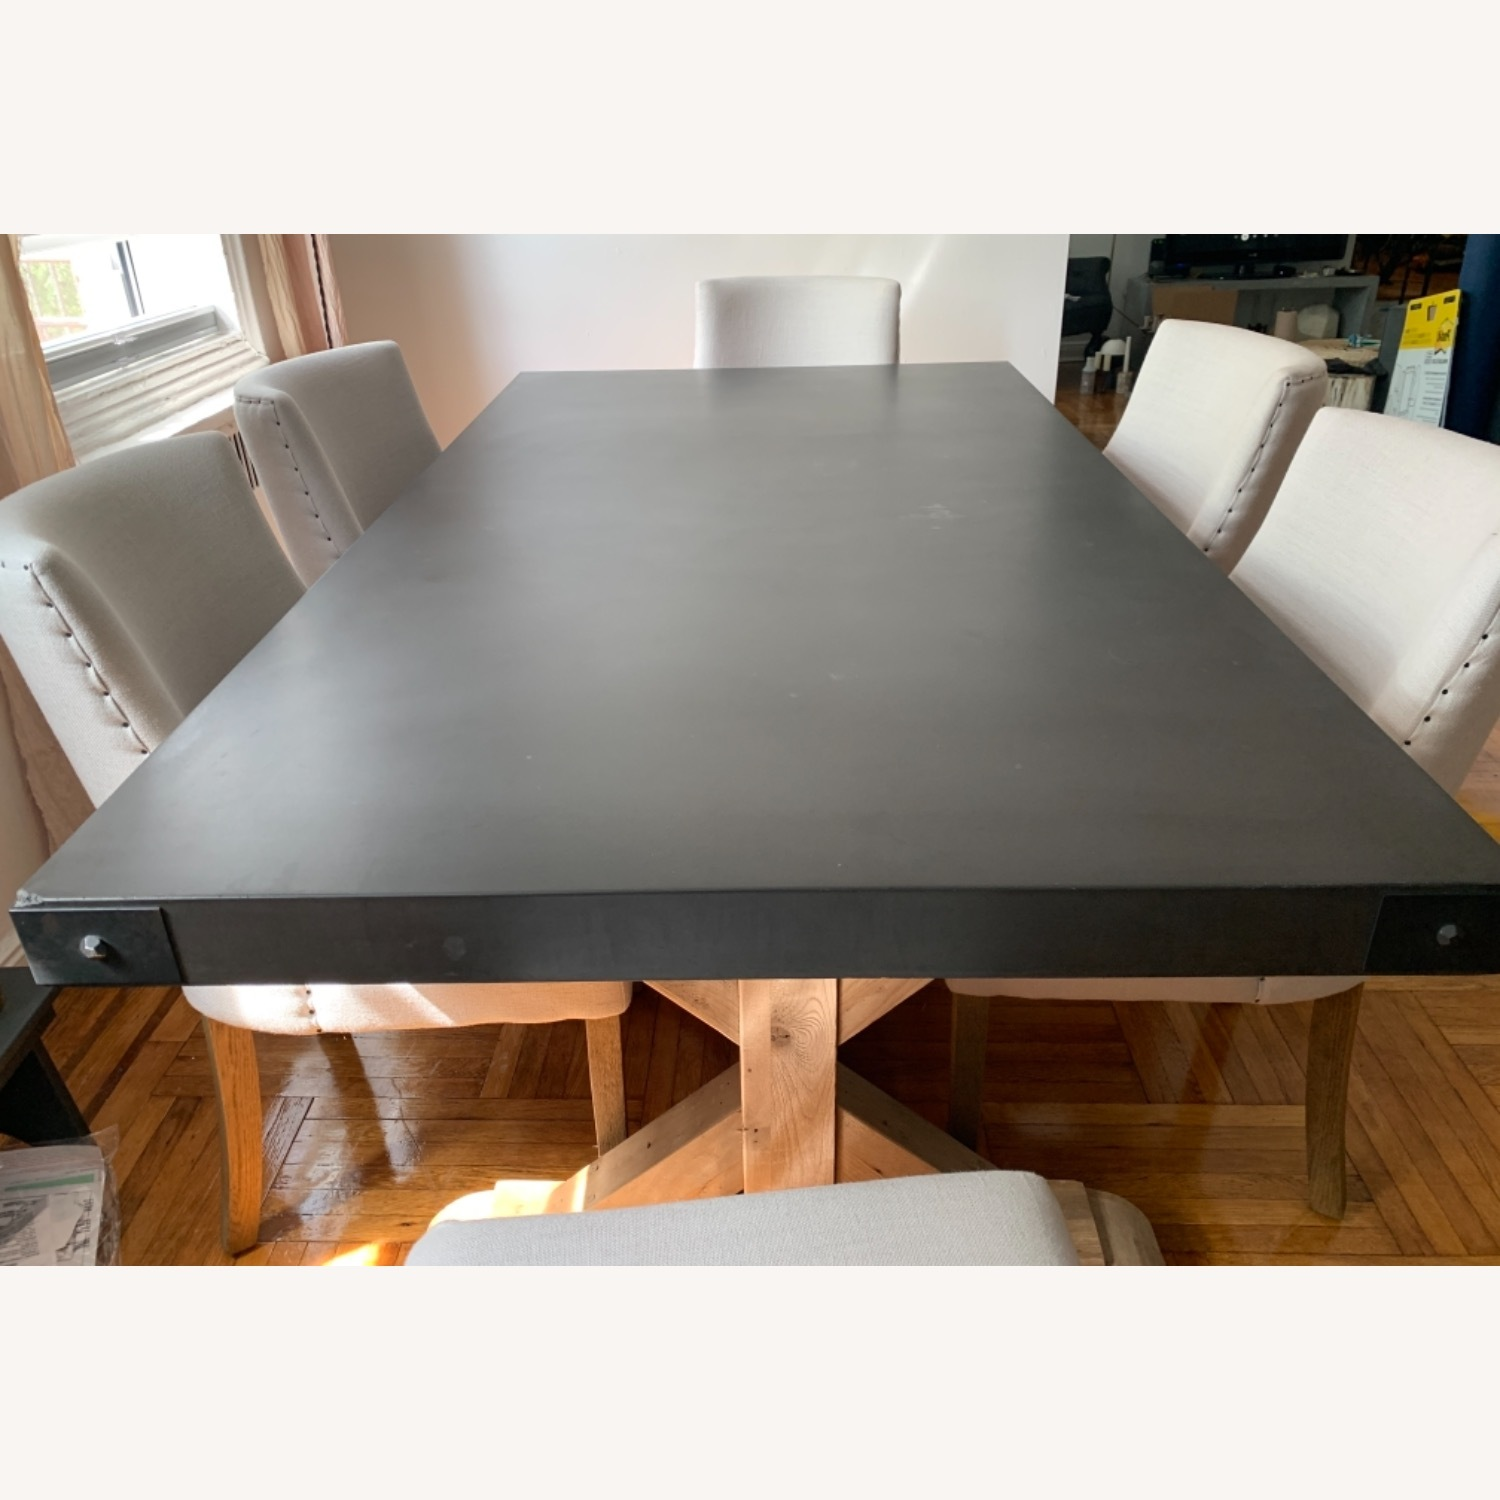 Restoration Hardware Salvaged Wood and Concrete Dining Table - image-5